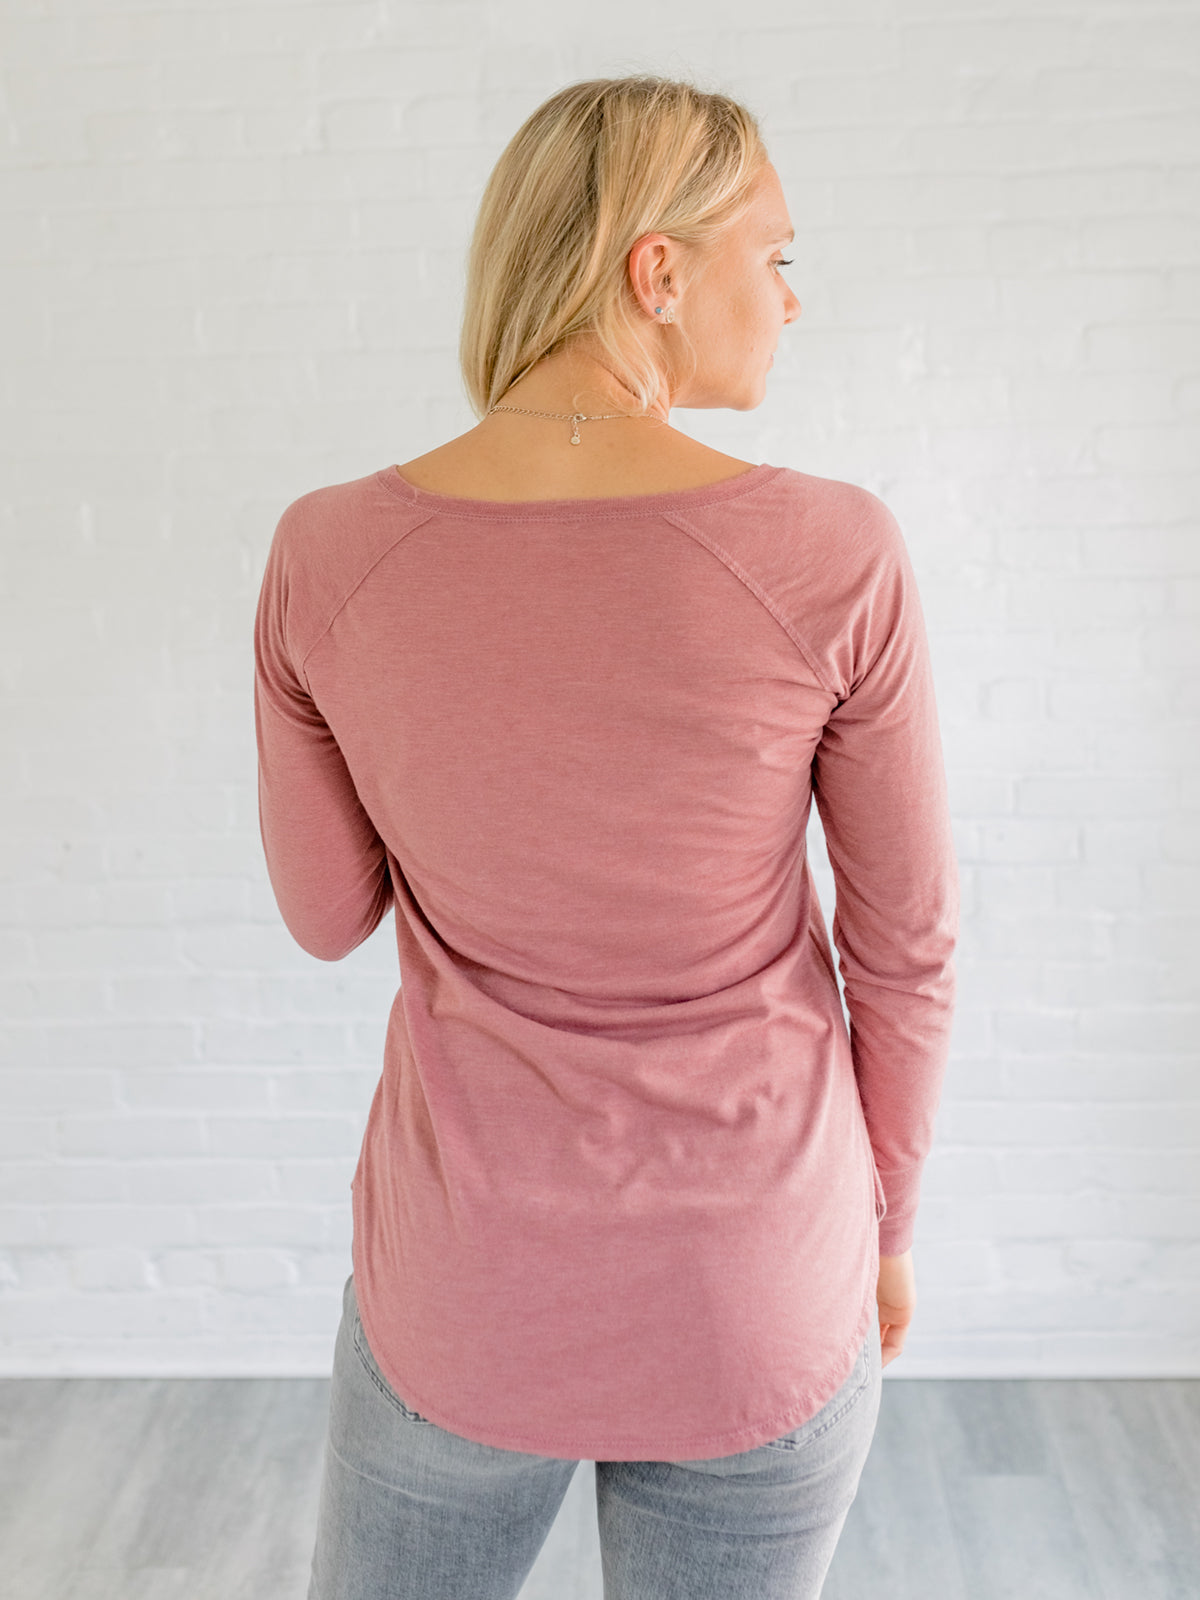 Freedom Sparrow - Mauve Long Sleeve Scoop Neck Shirt